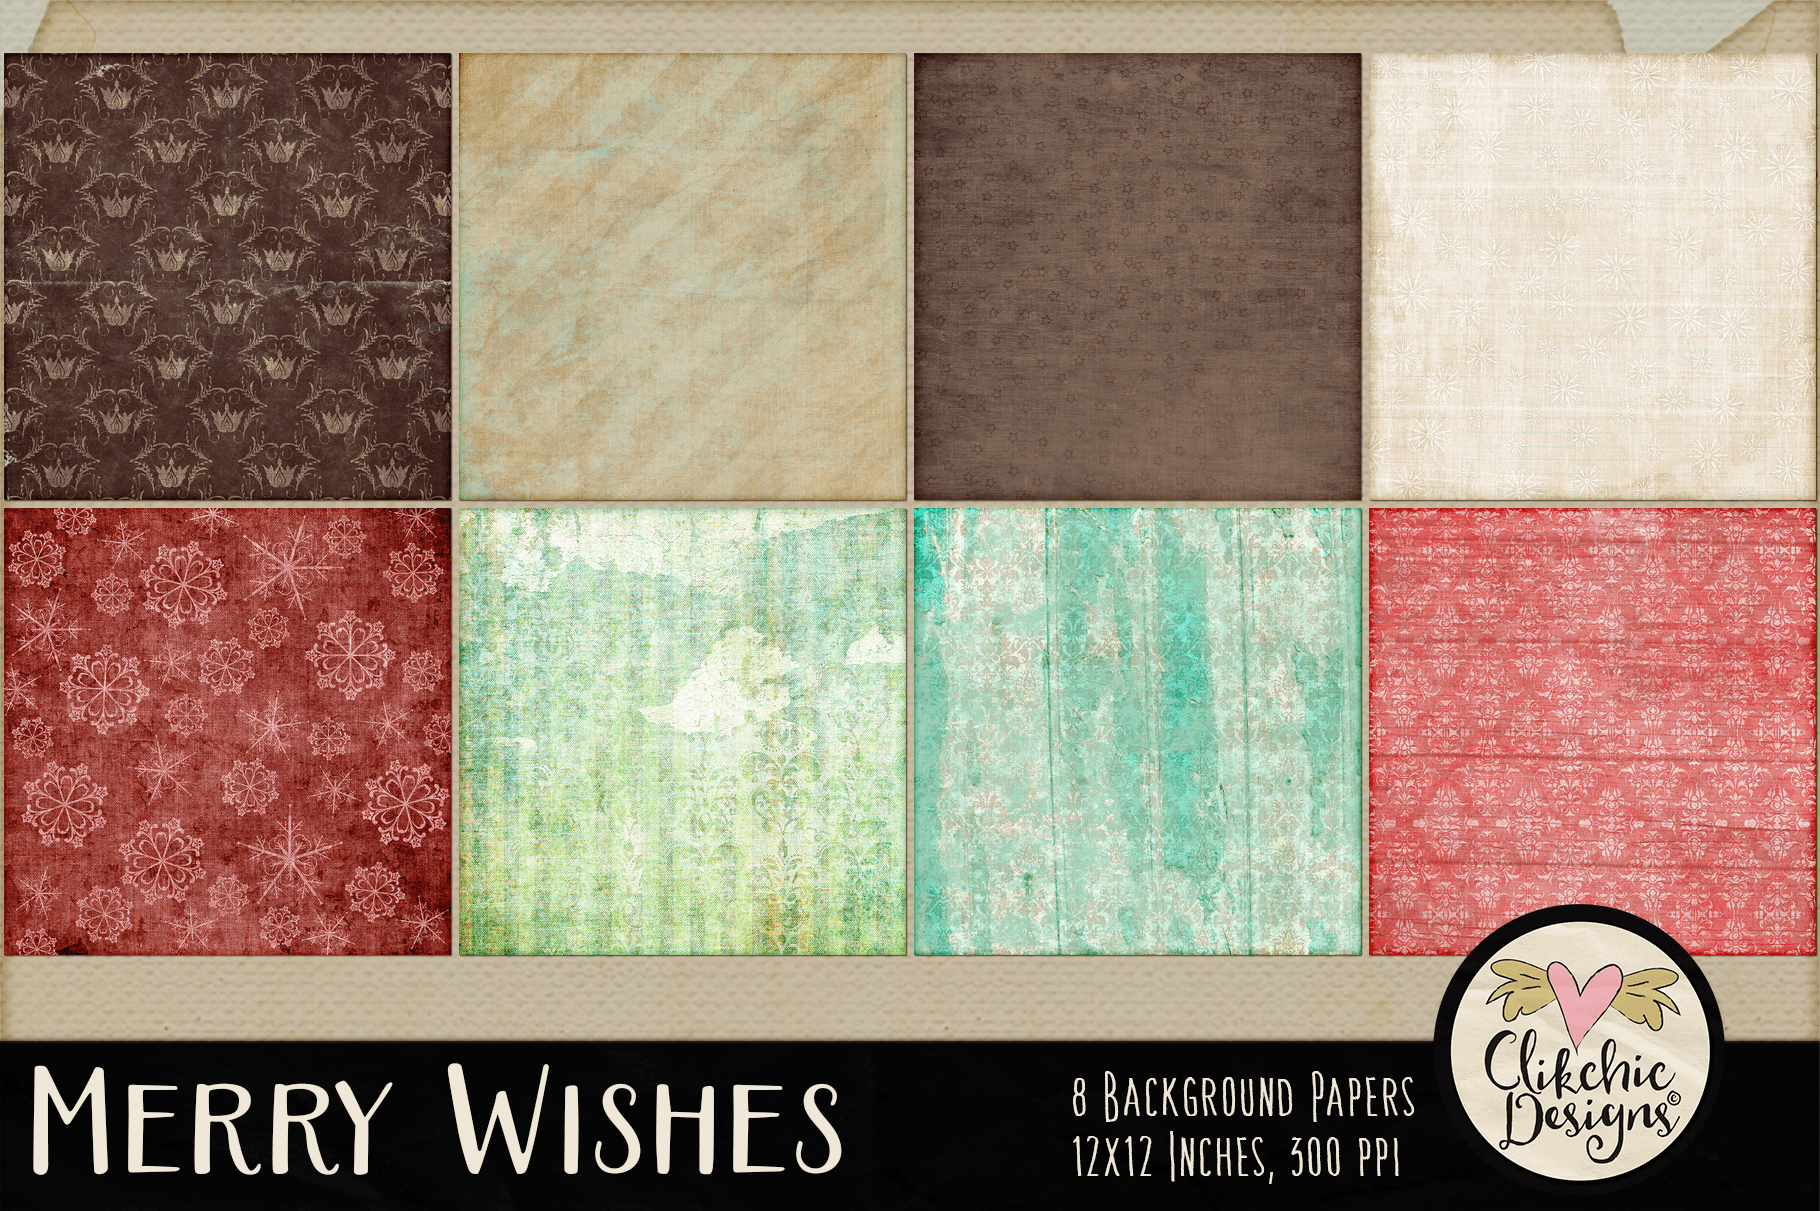 Christmas Backgrounds - Merry Wishes Digital Papers Textures example image 2